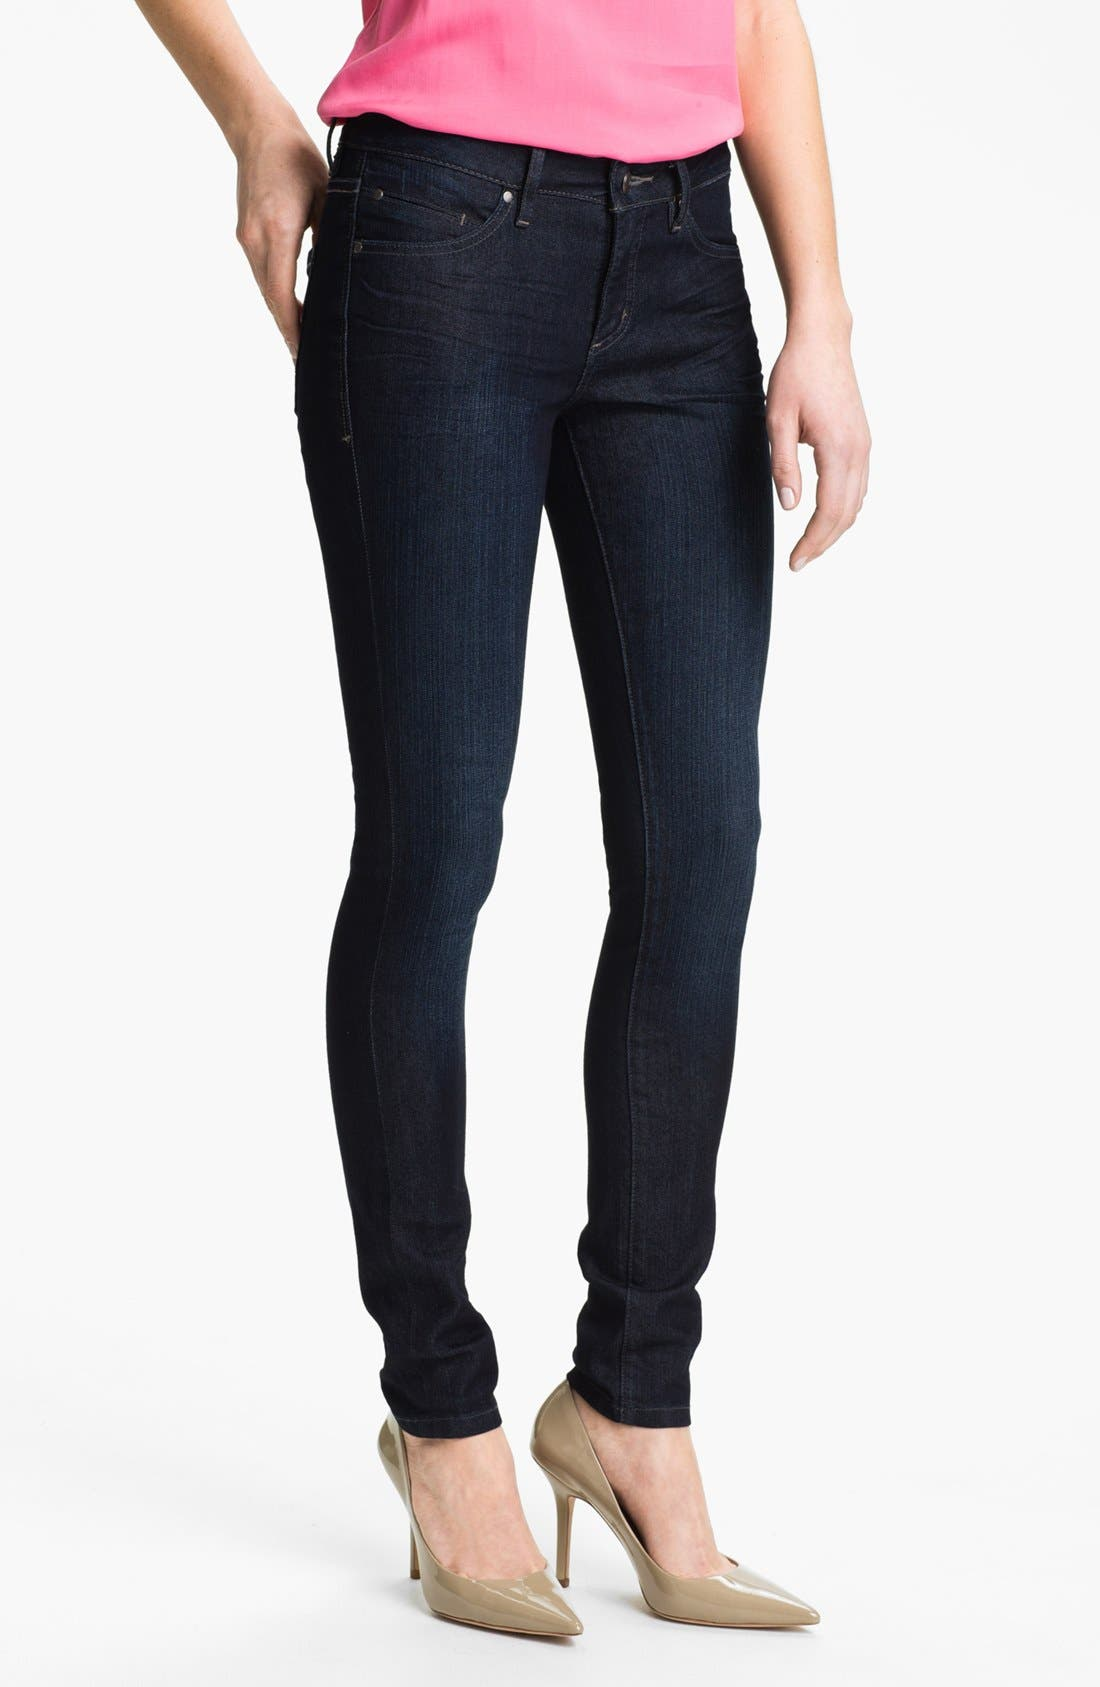 Main Image - Jag Jeans 'Reece' Skinny Jeans